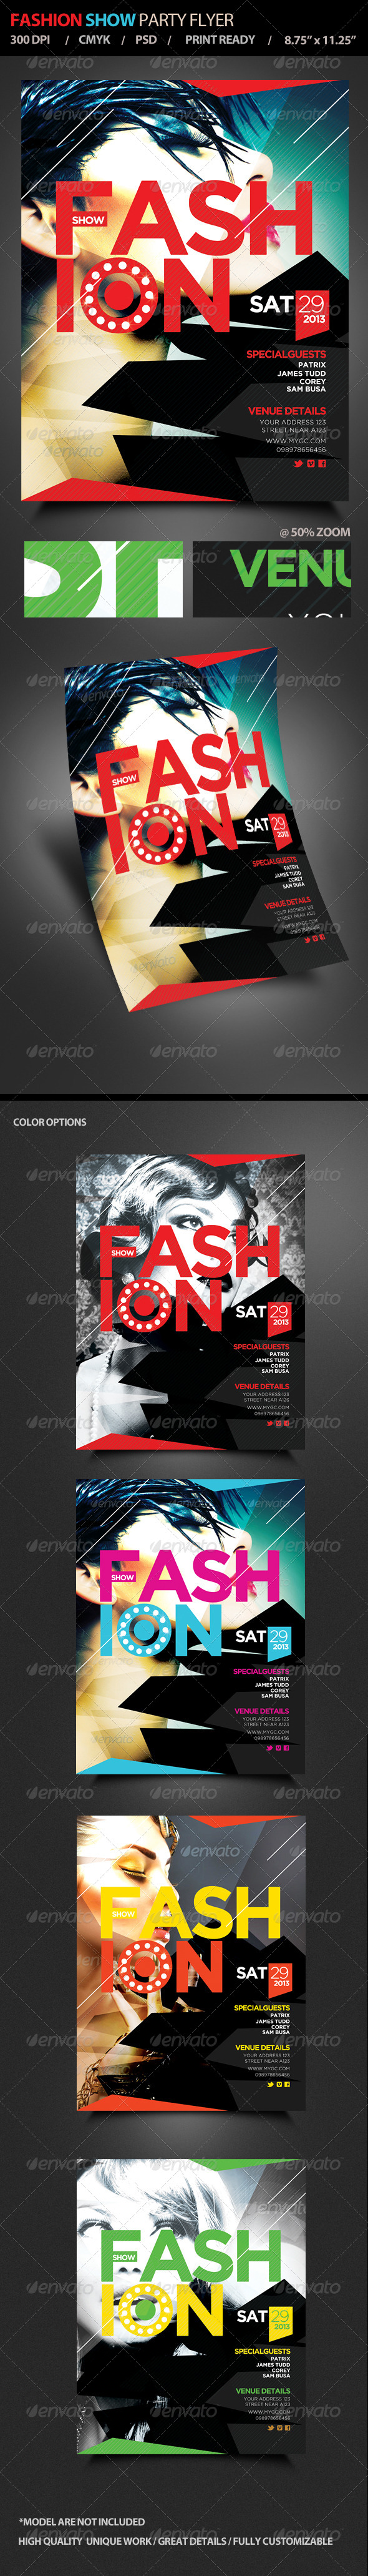 Fashion Show Flyer/Magazine Cover V2 - Events Flyers